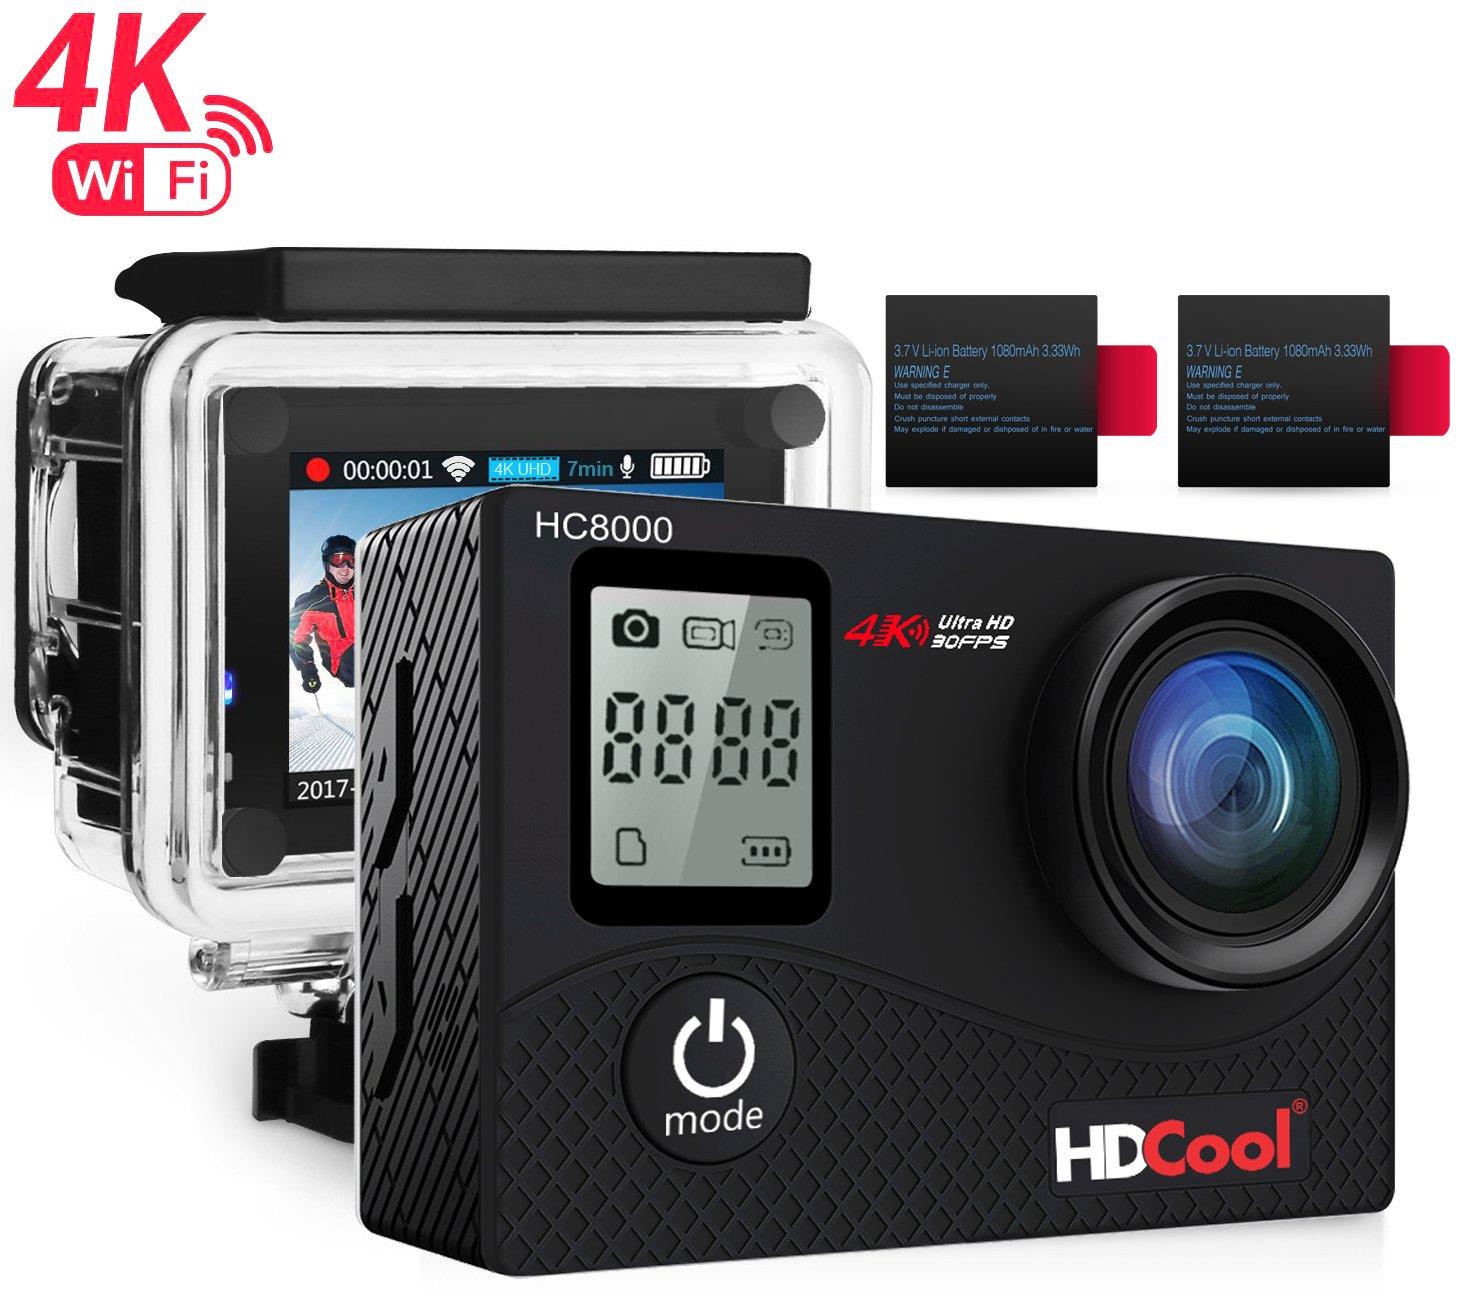 HDCool HC8000 Action Camera 16MP 1080P WiFi Waterproof Sports Camera 2.0 Inch LCD Display 170° Ultra Wide-Angle Lens Include 2 Rechargeable 1050 mAh Batteries by HDCOOL